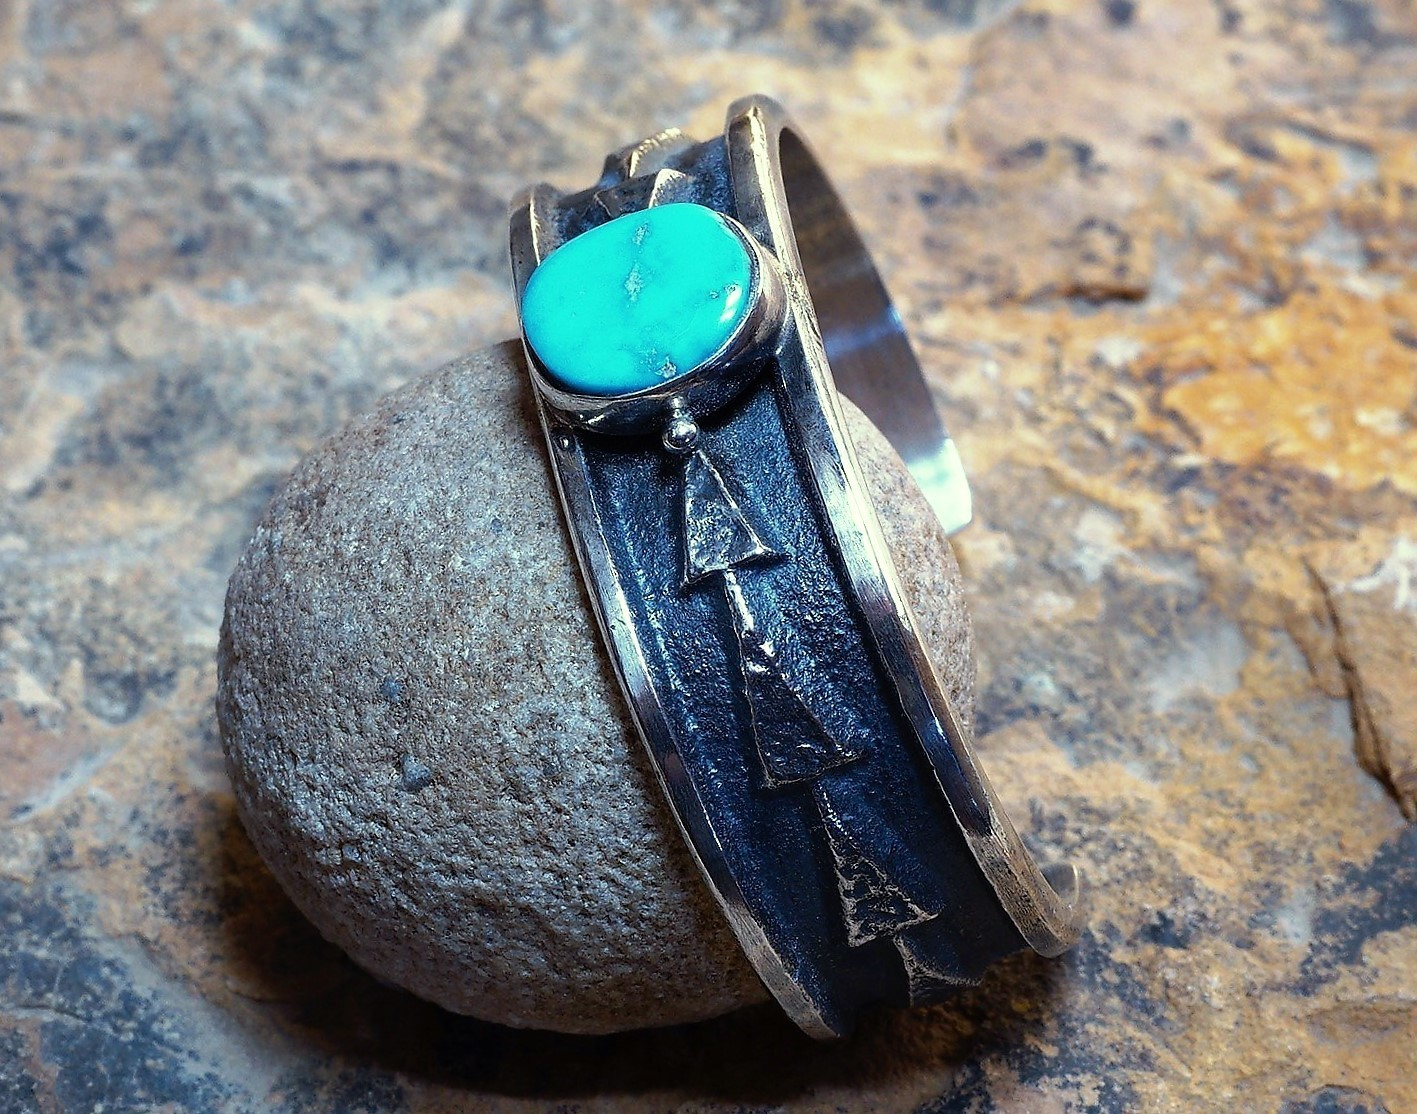 The Sleeping Beauty arrow bracelet laying on a rock showcasing the small arrow engravings on the side and the turquoise in the middle